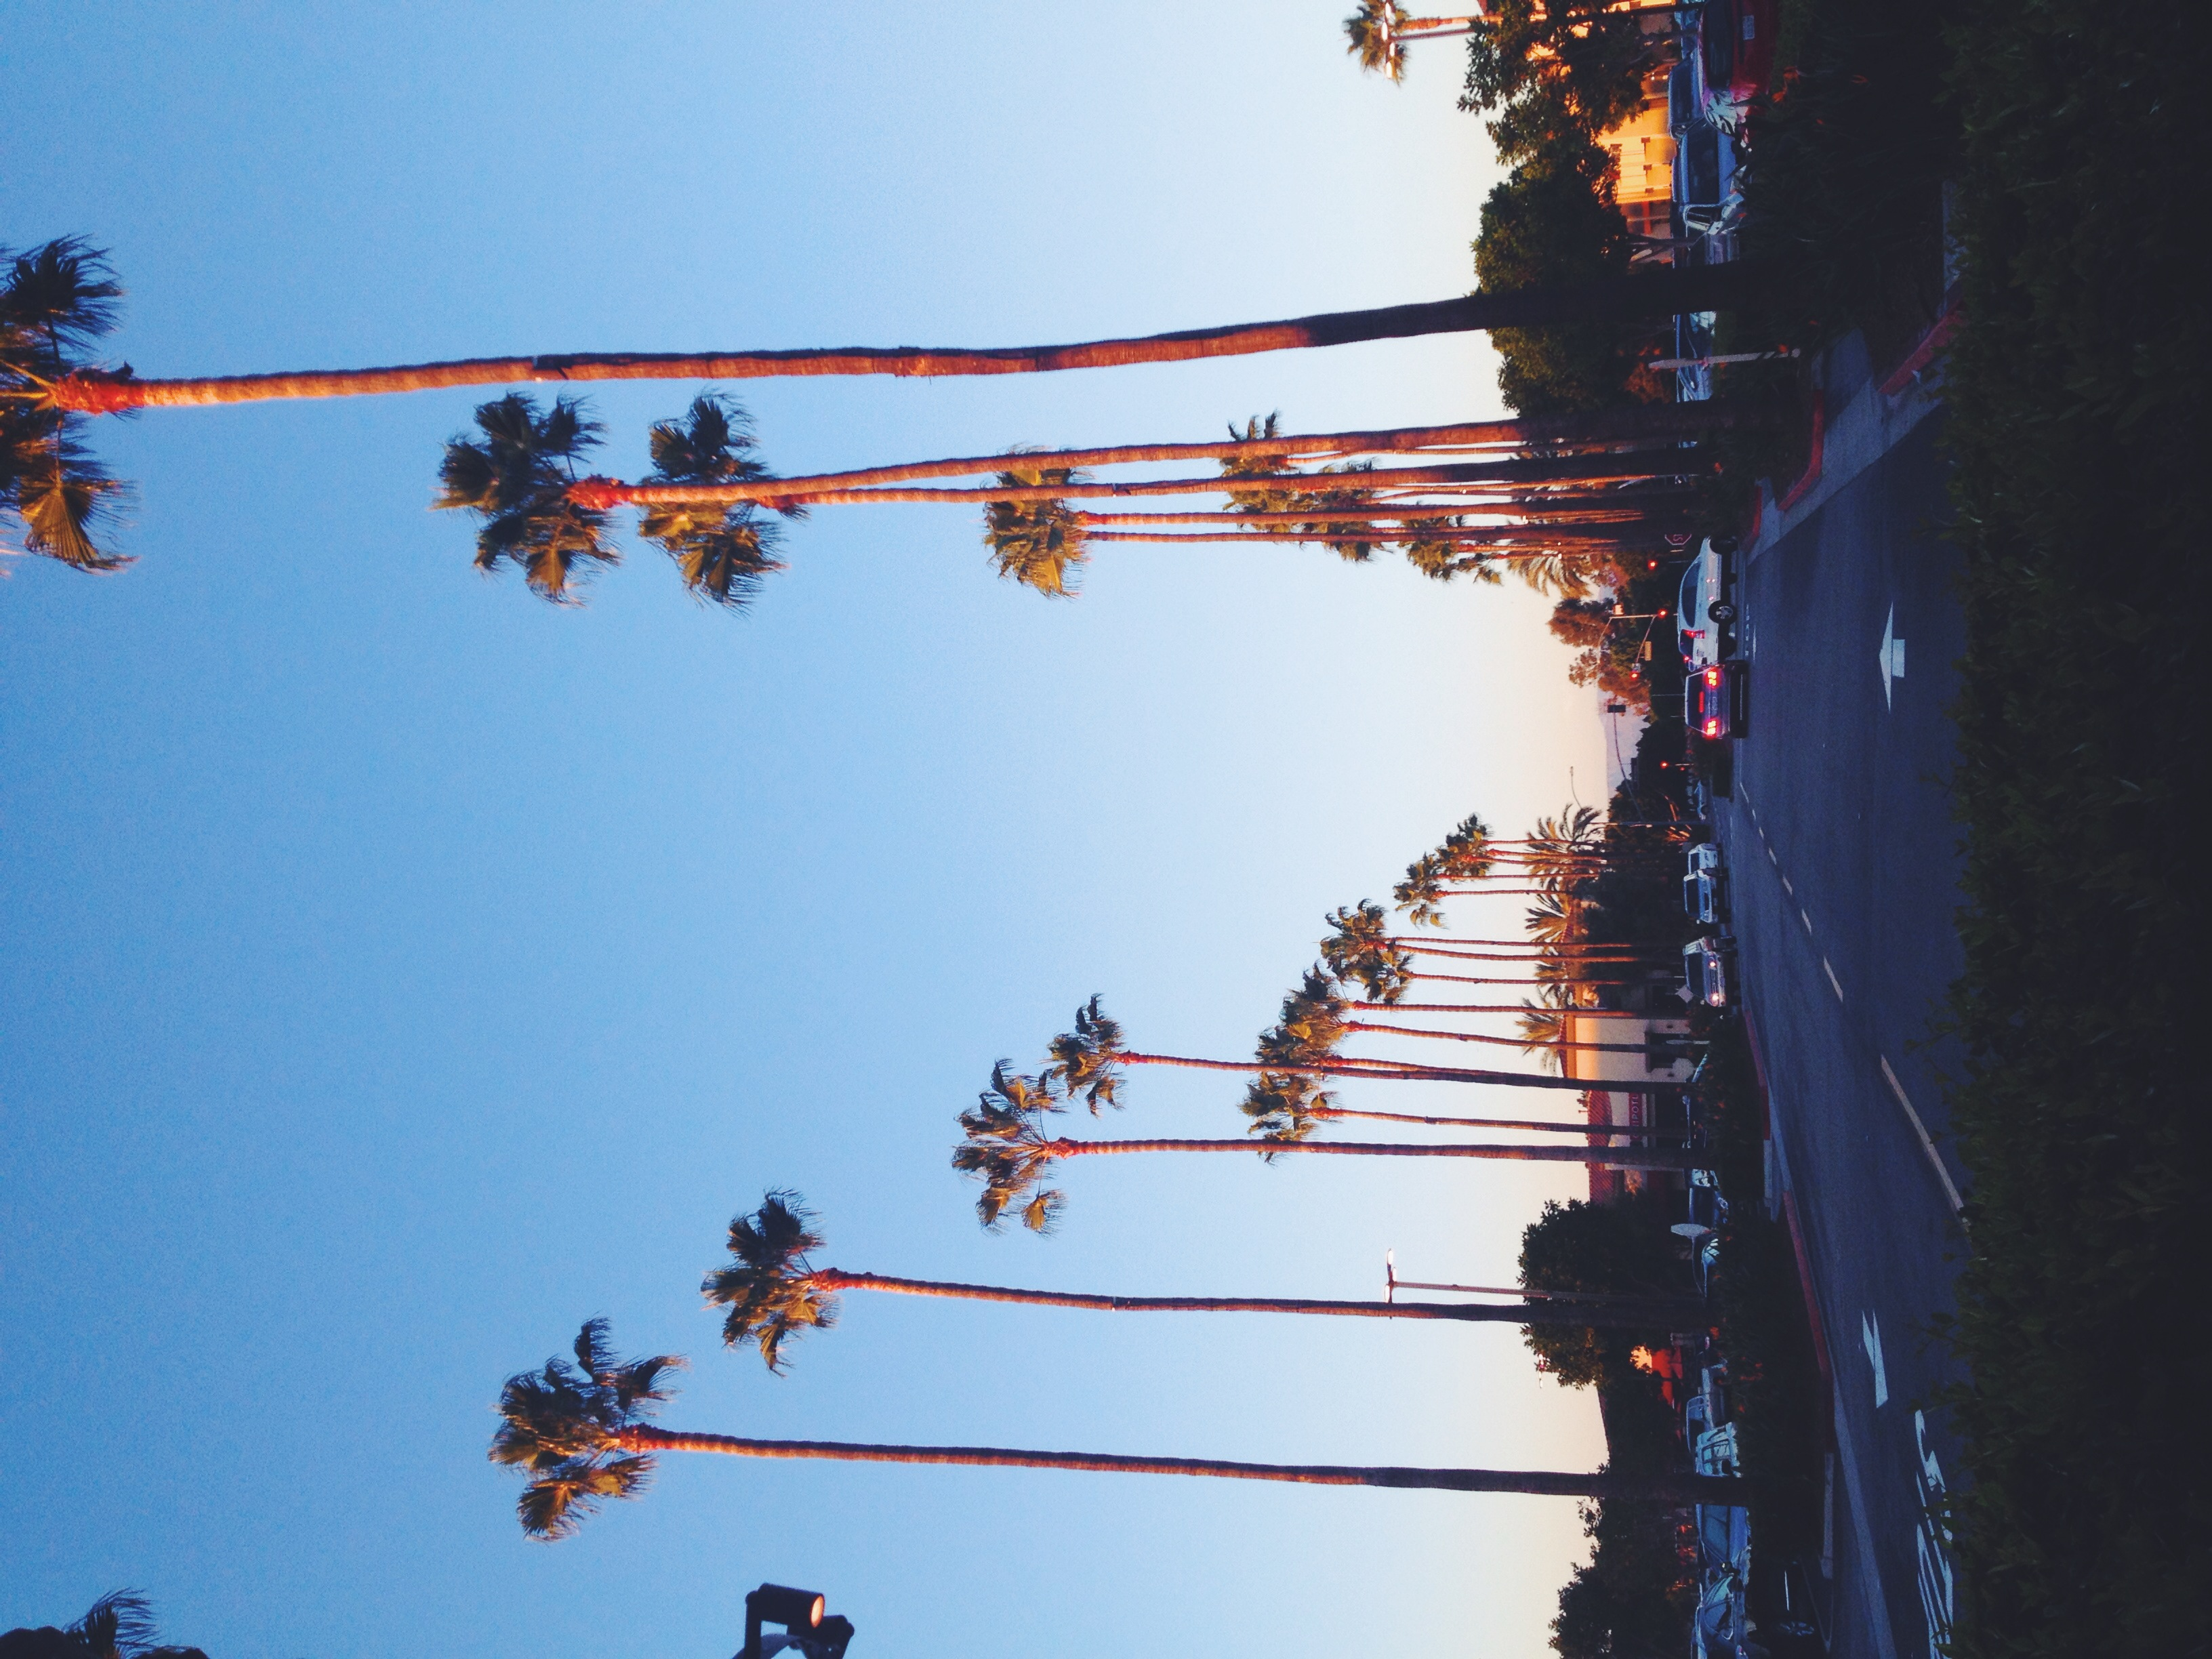 In love with palm trees!